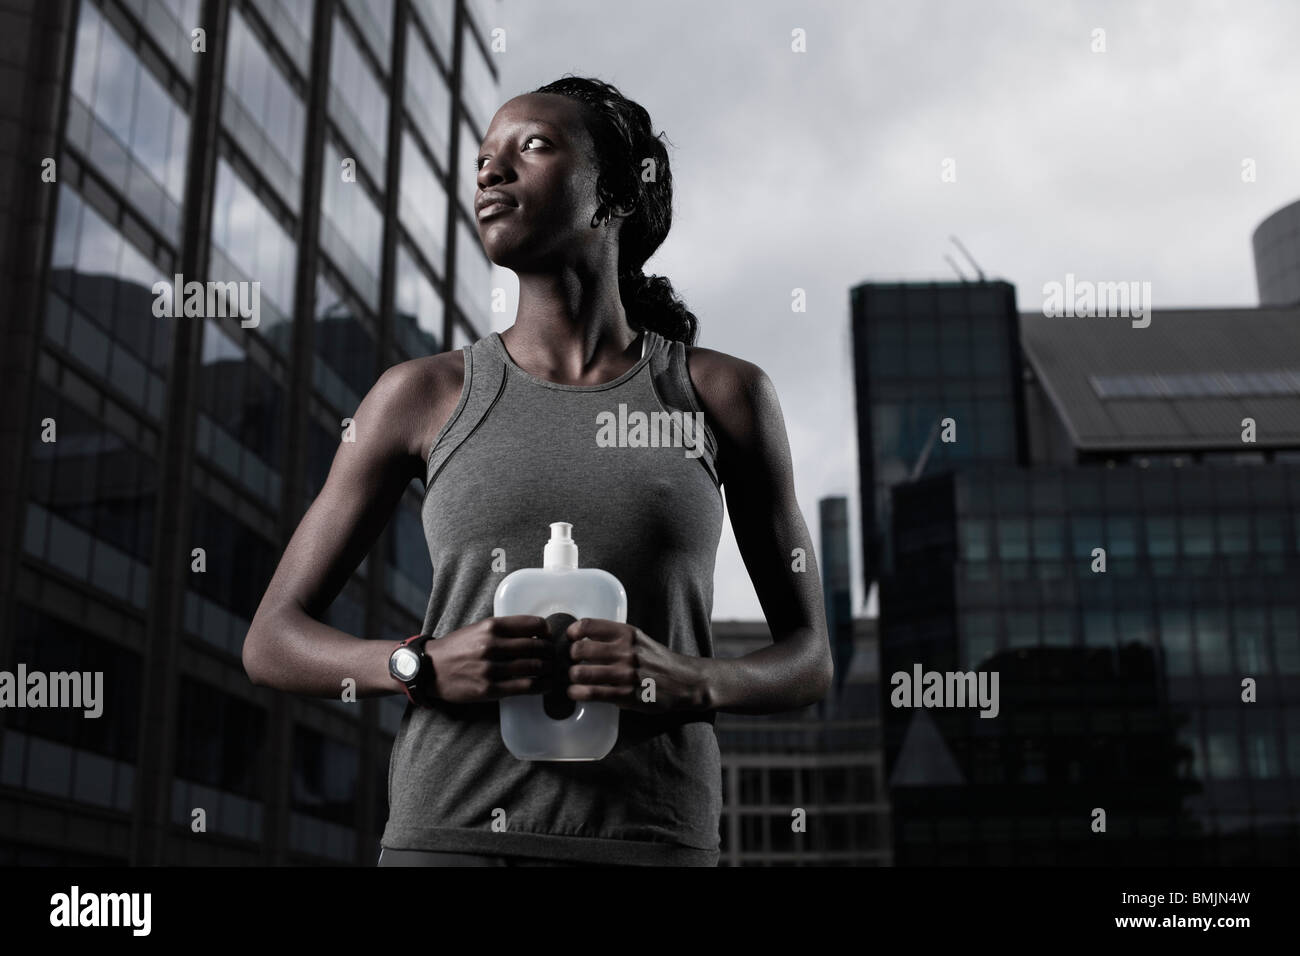 Fit young woman dressed in sportswear and holding water bottle backgrounded by modern city buildings - Stock Image